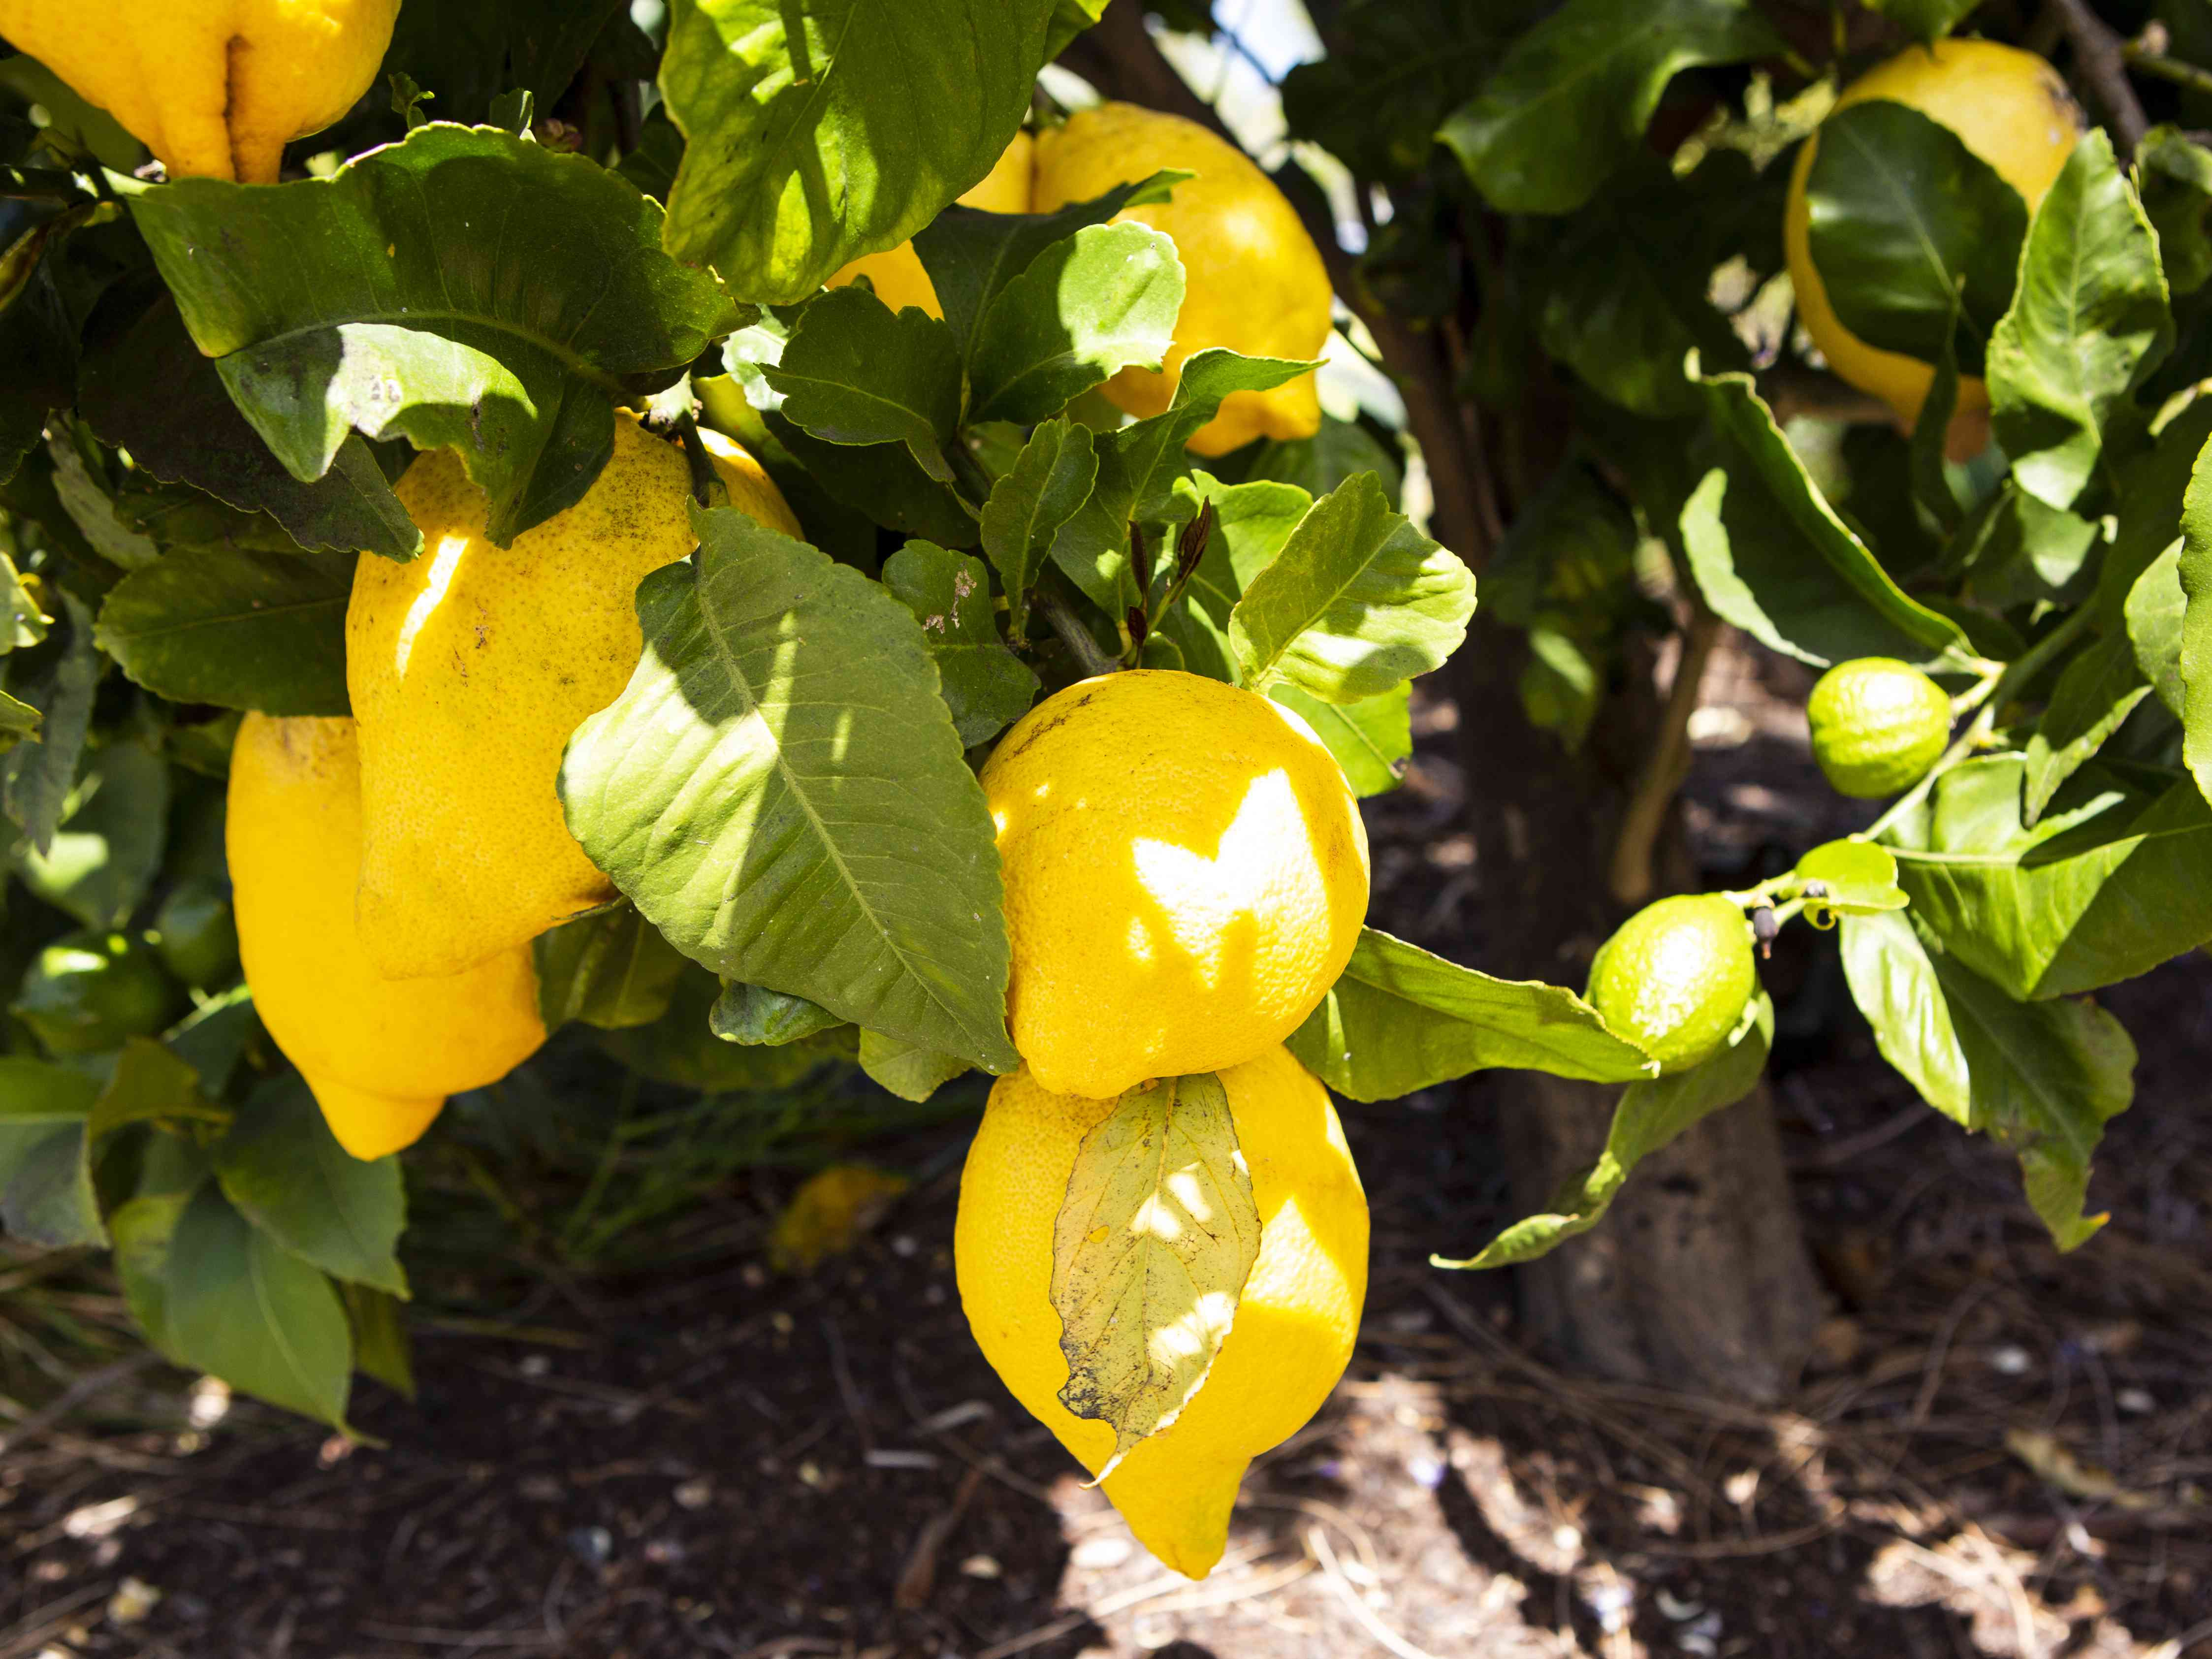 Lemon tree with yellow lemons hanging from branches in sunlight closeup